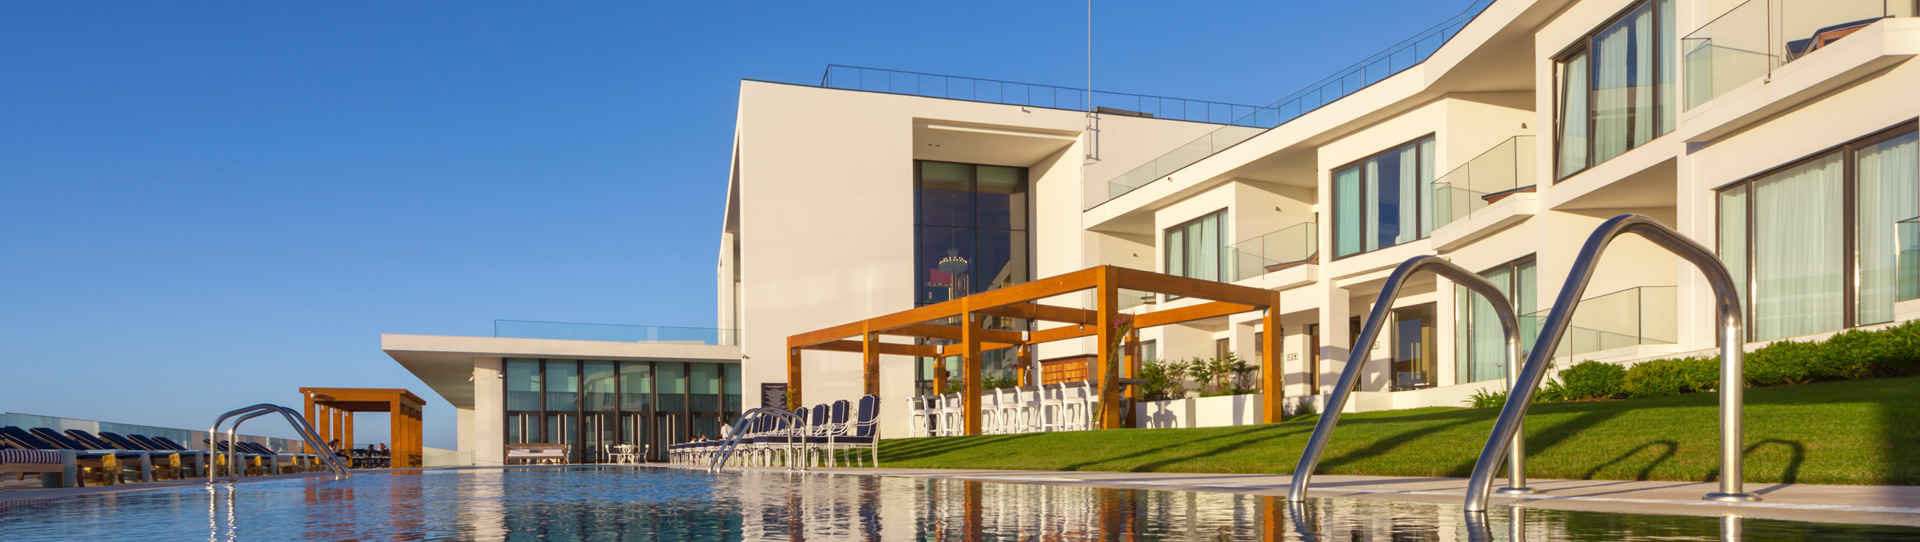 Evolutee Royal Obidos Hotel & Spa - Photo 1